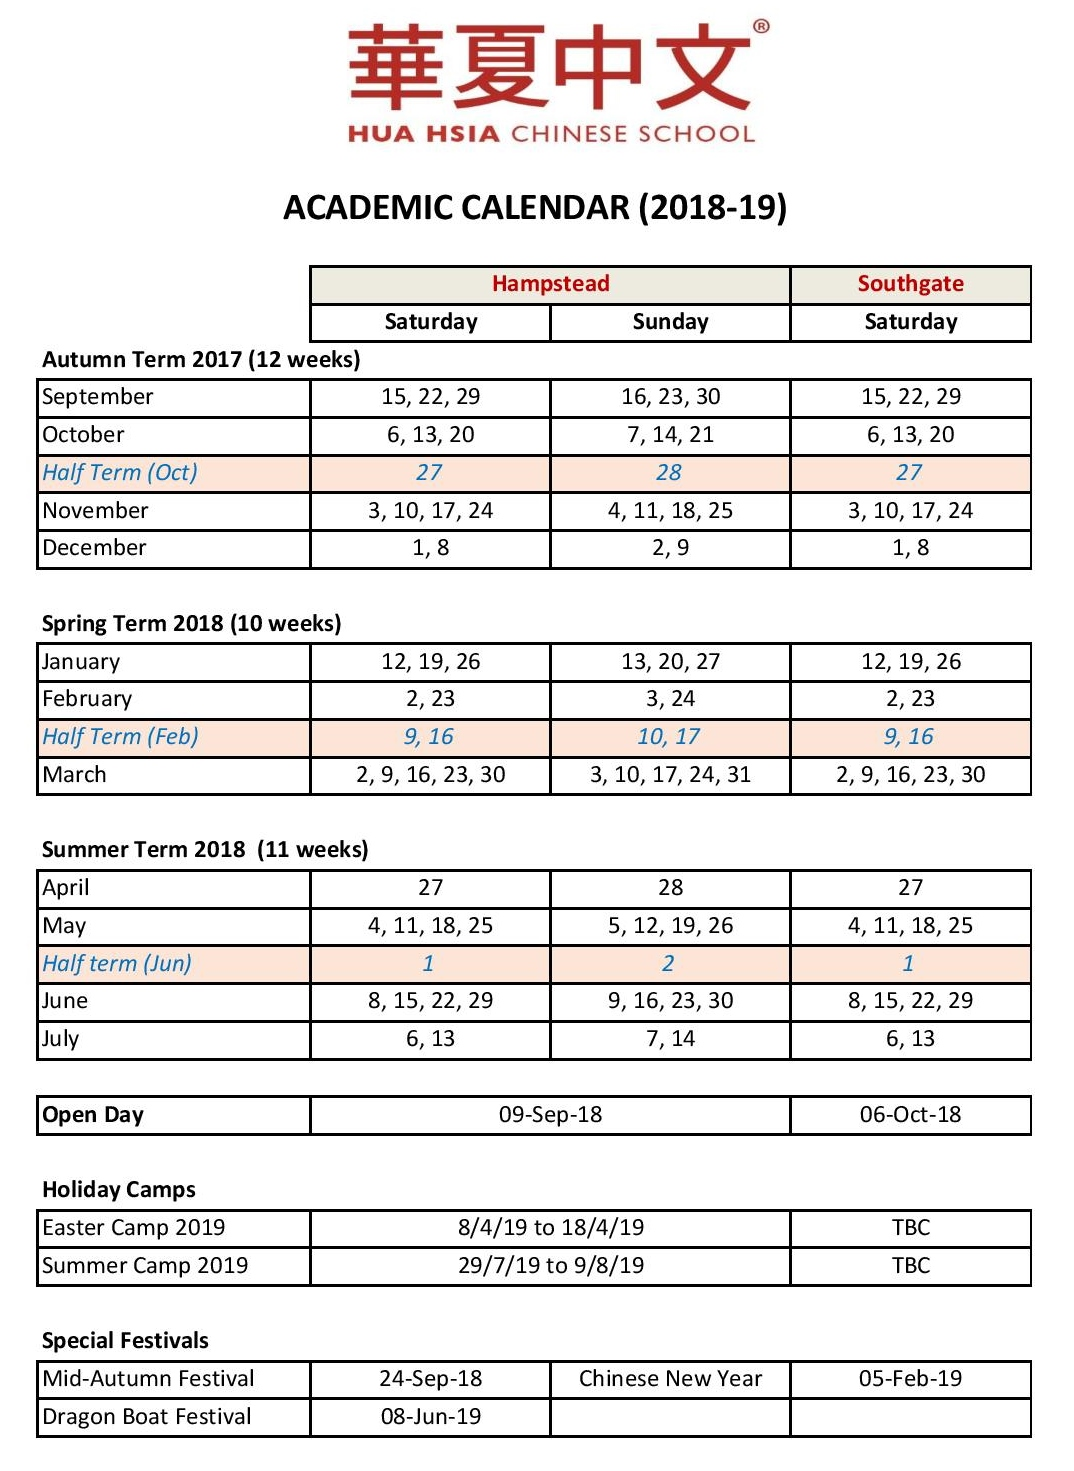 Academic Calendar (2018-19) revised-page-001